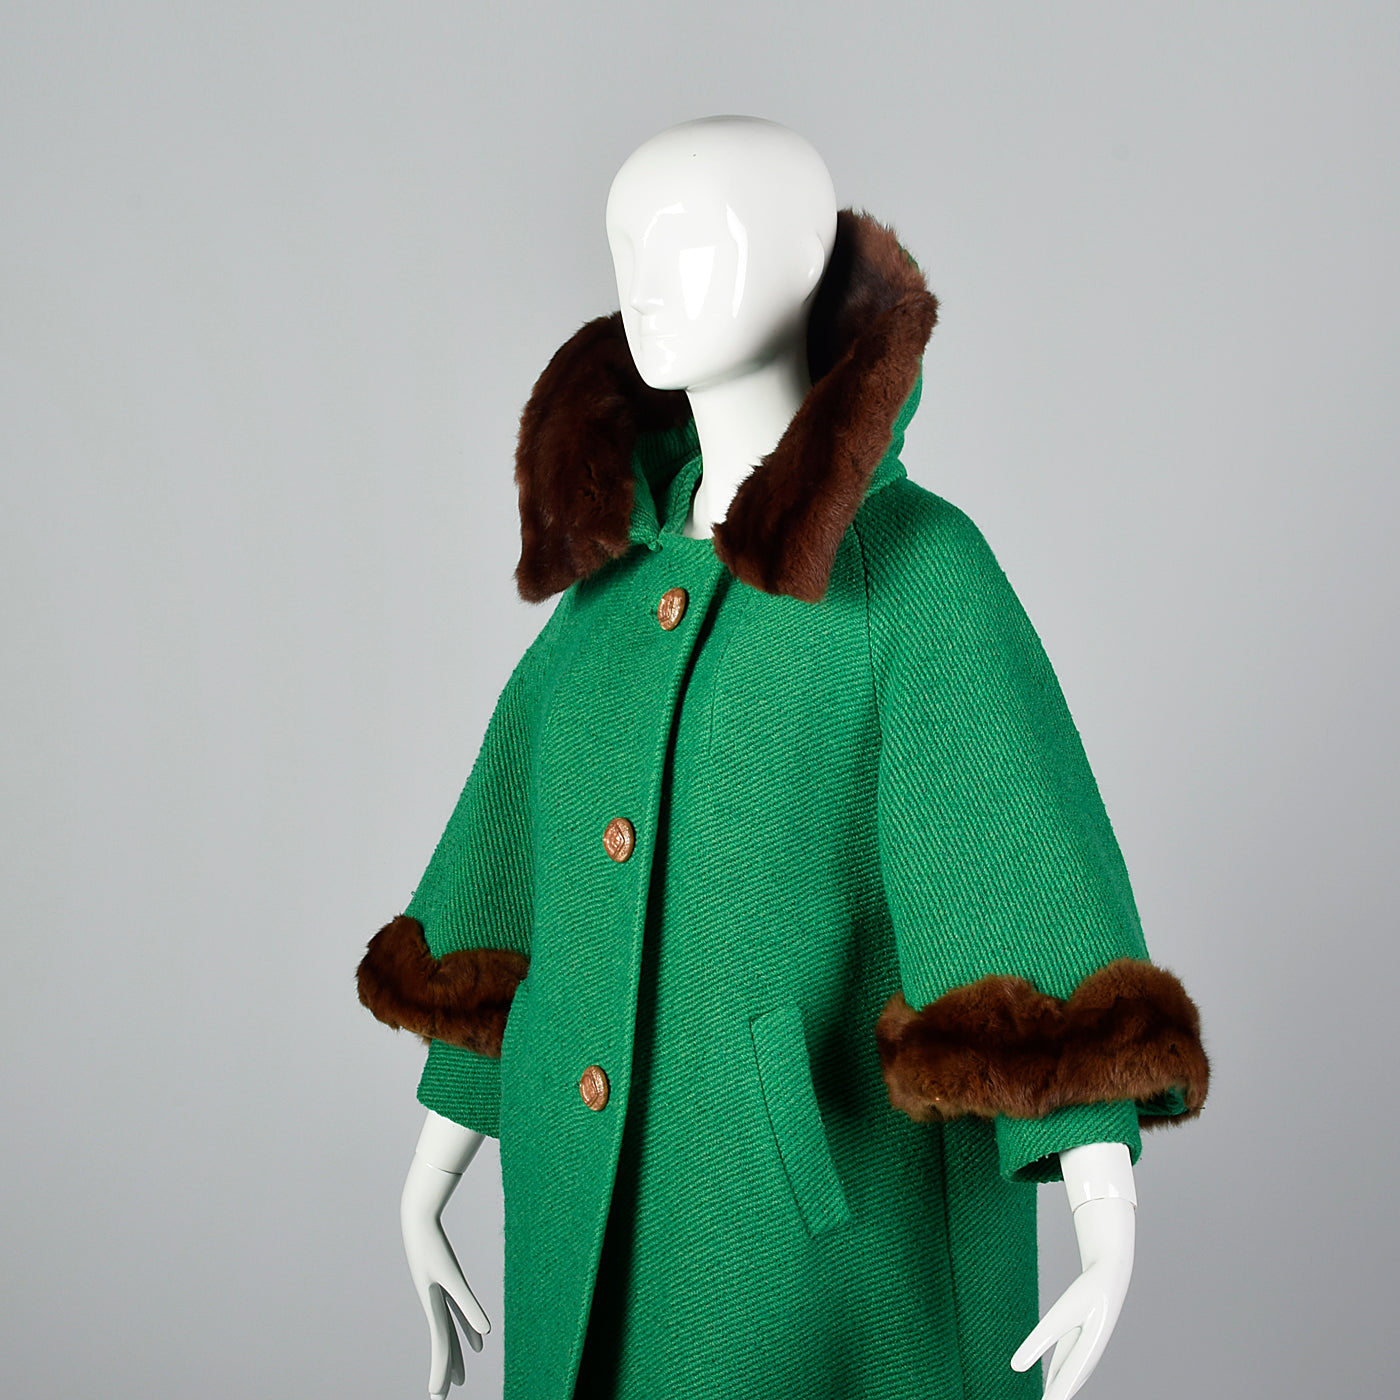 1960s Green Coat with Marmot Fur Trim & Dramatic Collar